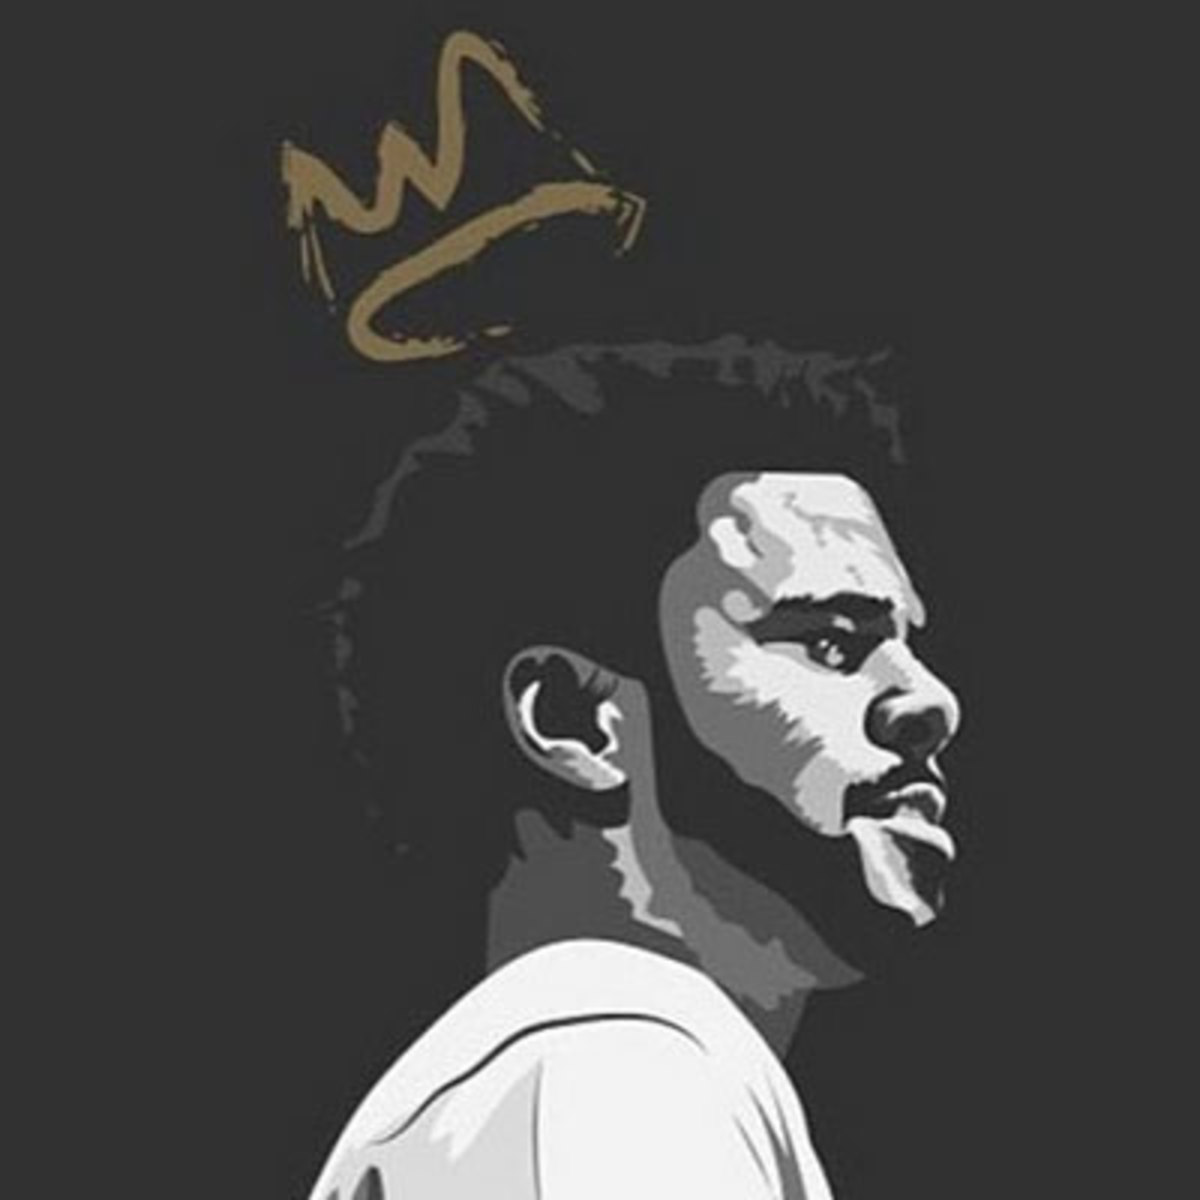 jcole-future-roc-nation.jpg